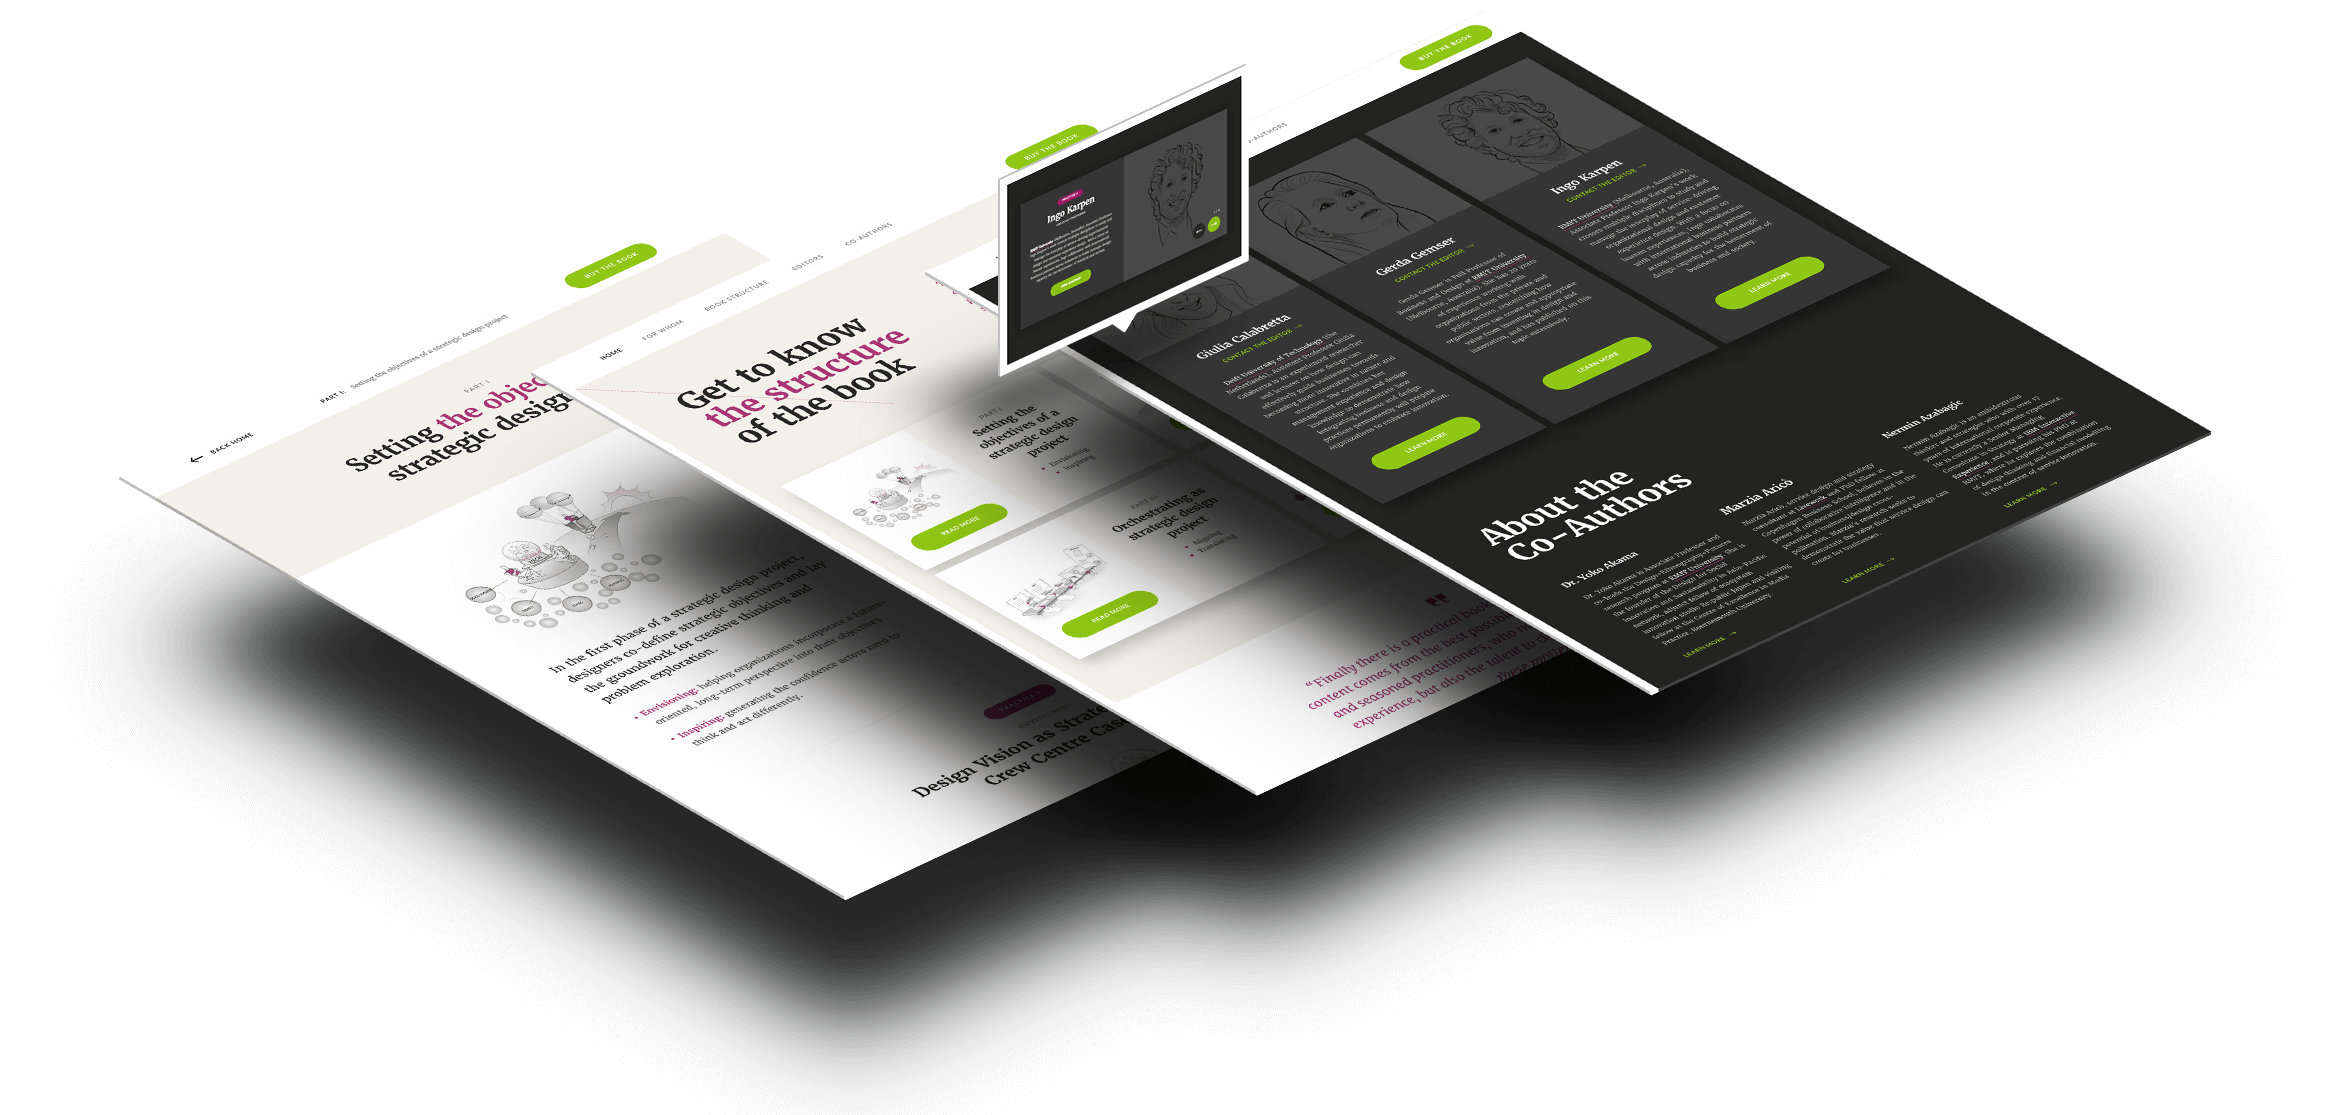 rodesk strategic design screens